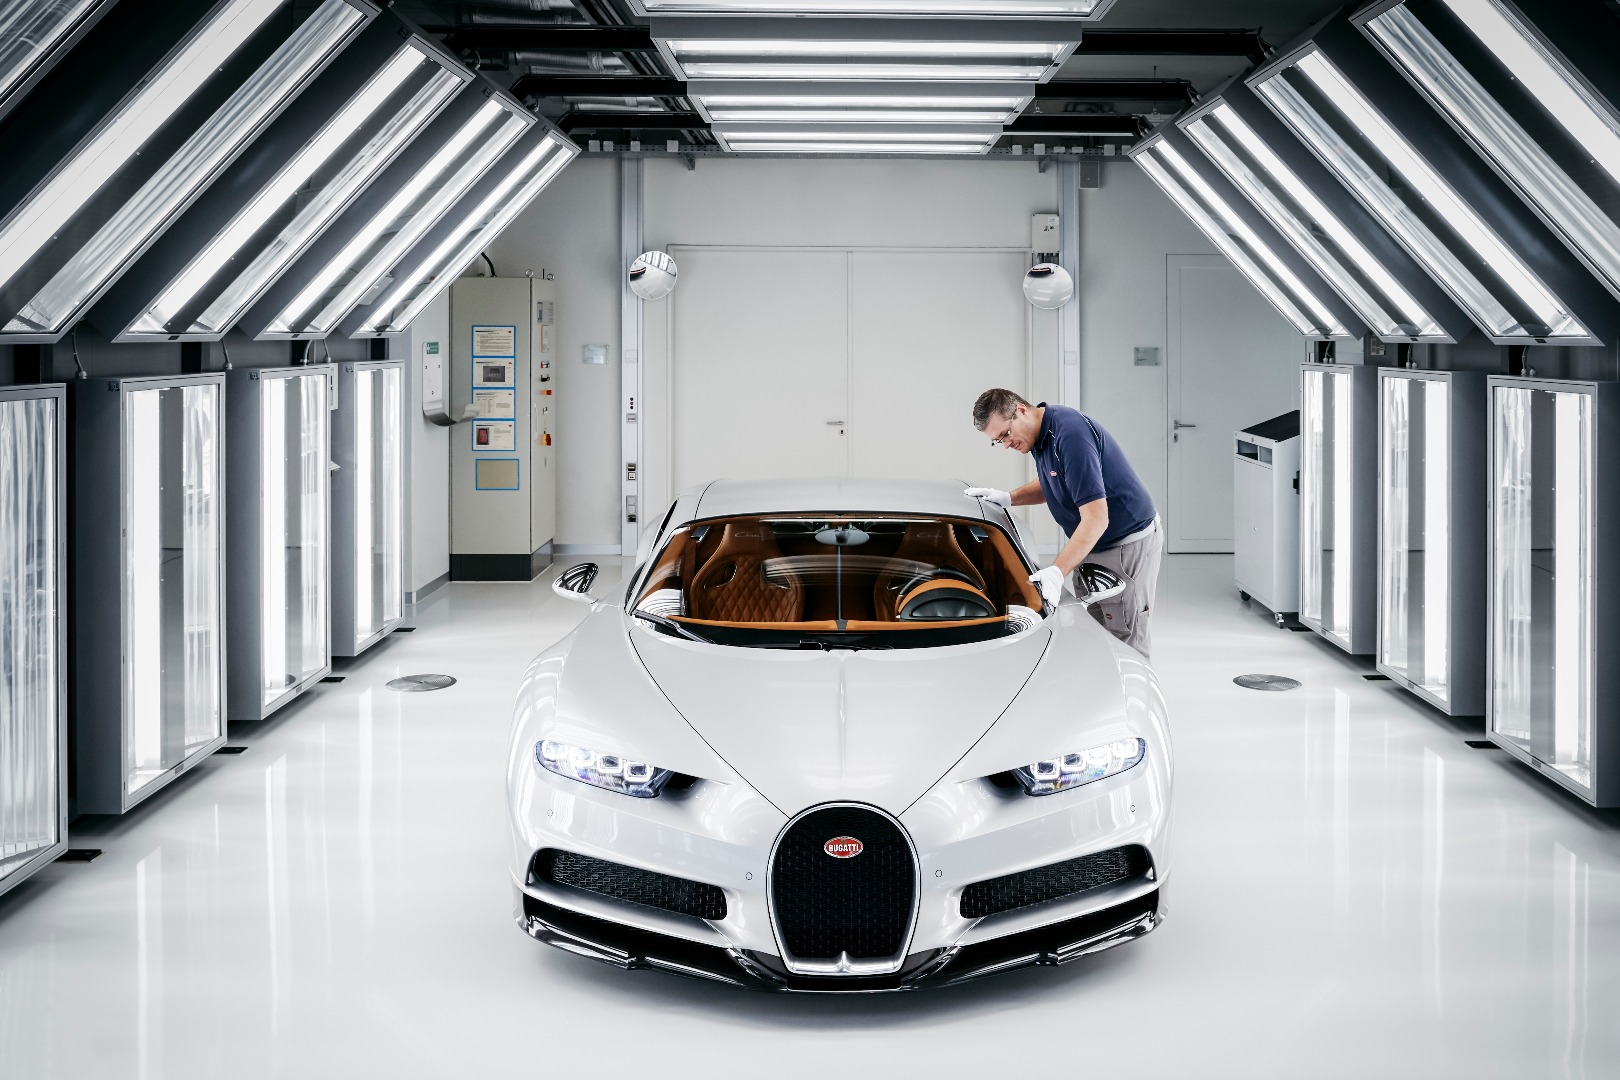 Perfection in the making: Bugatti lifts curtain on Chiron production line